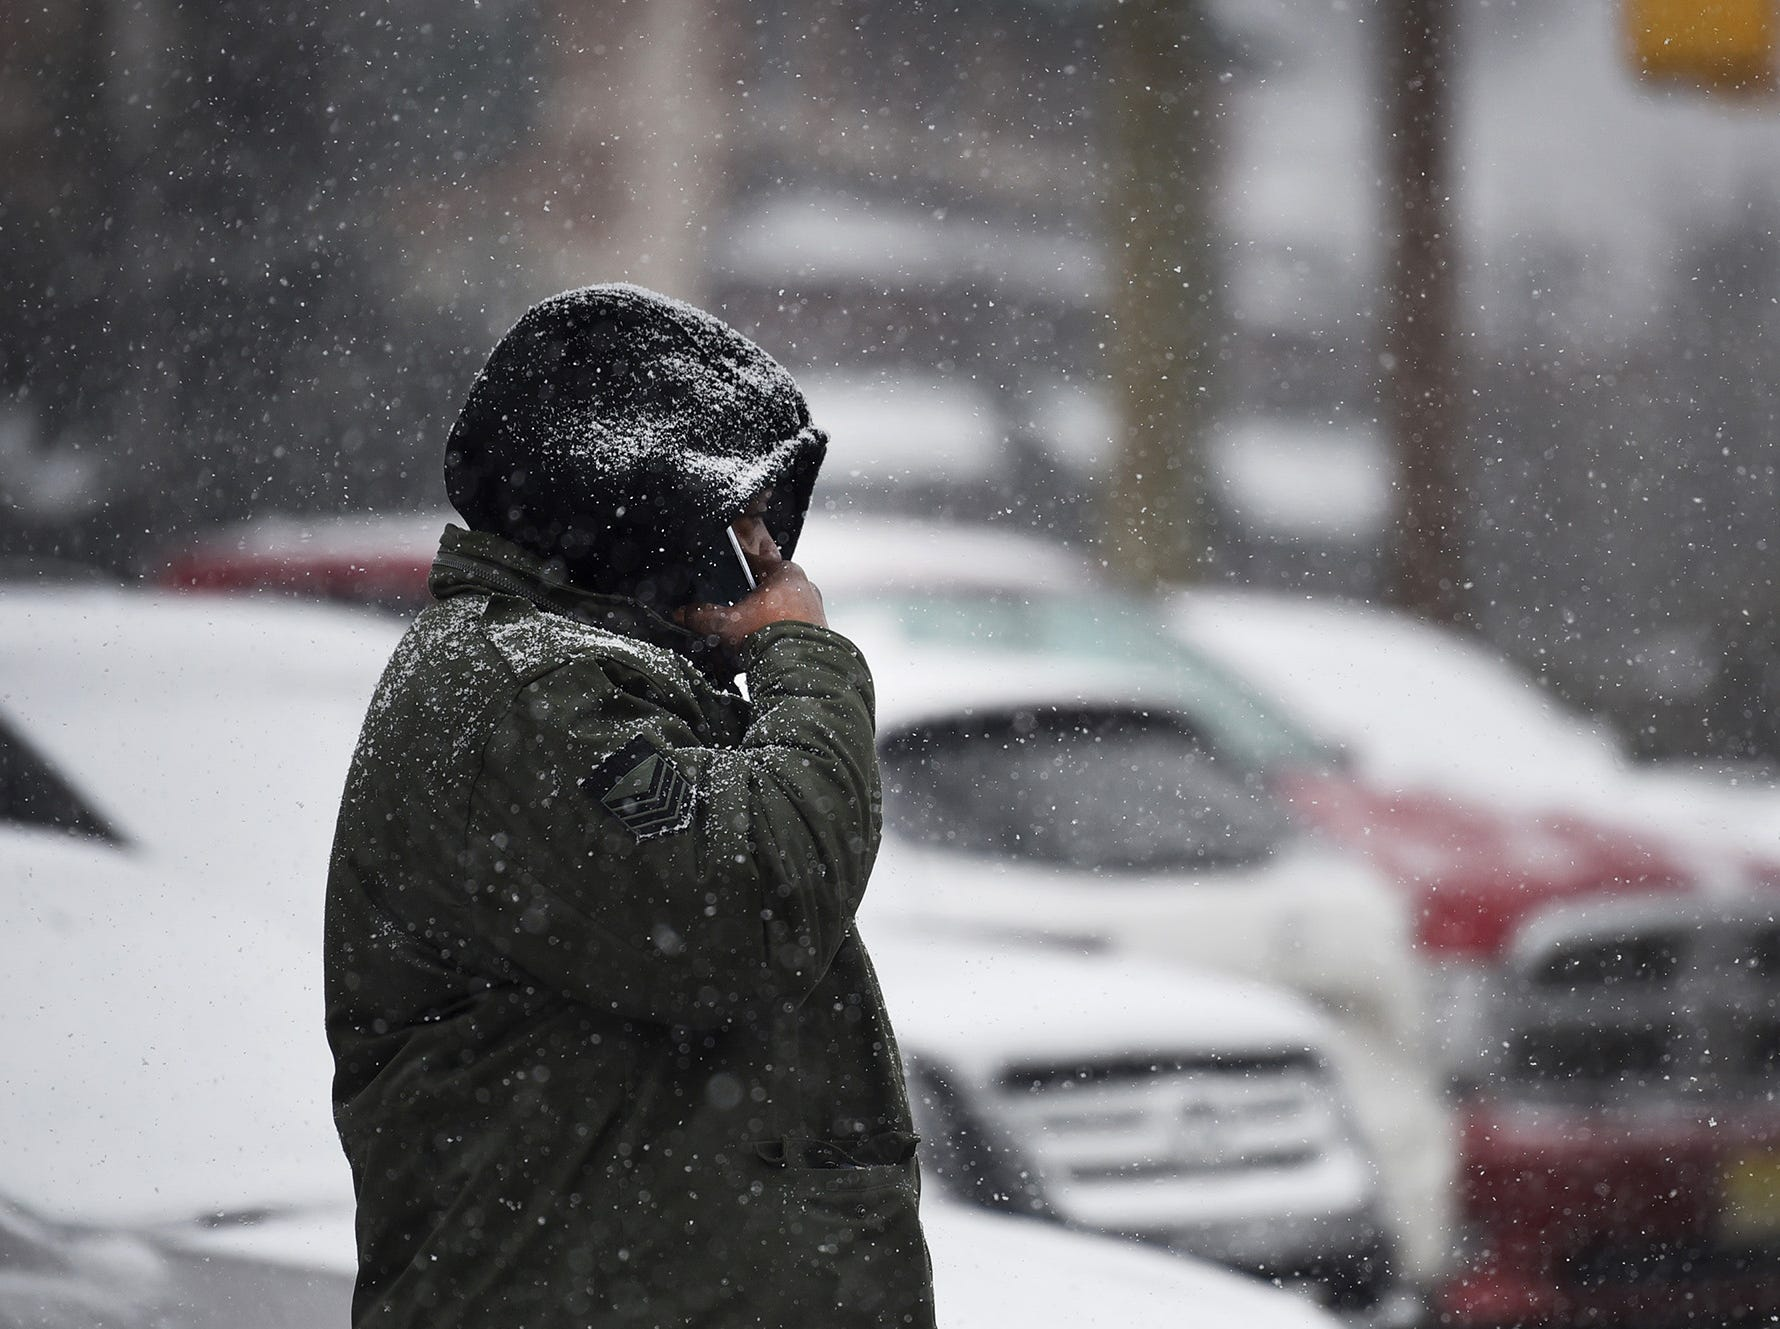 A man waits for a bus to come as the snow falls in Fair Lawn on 02/20/19.